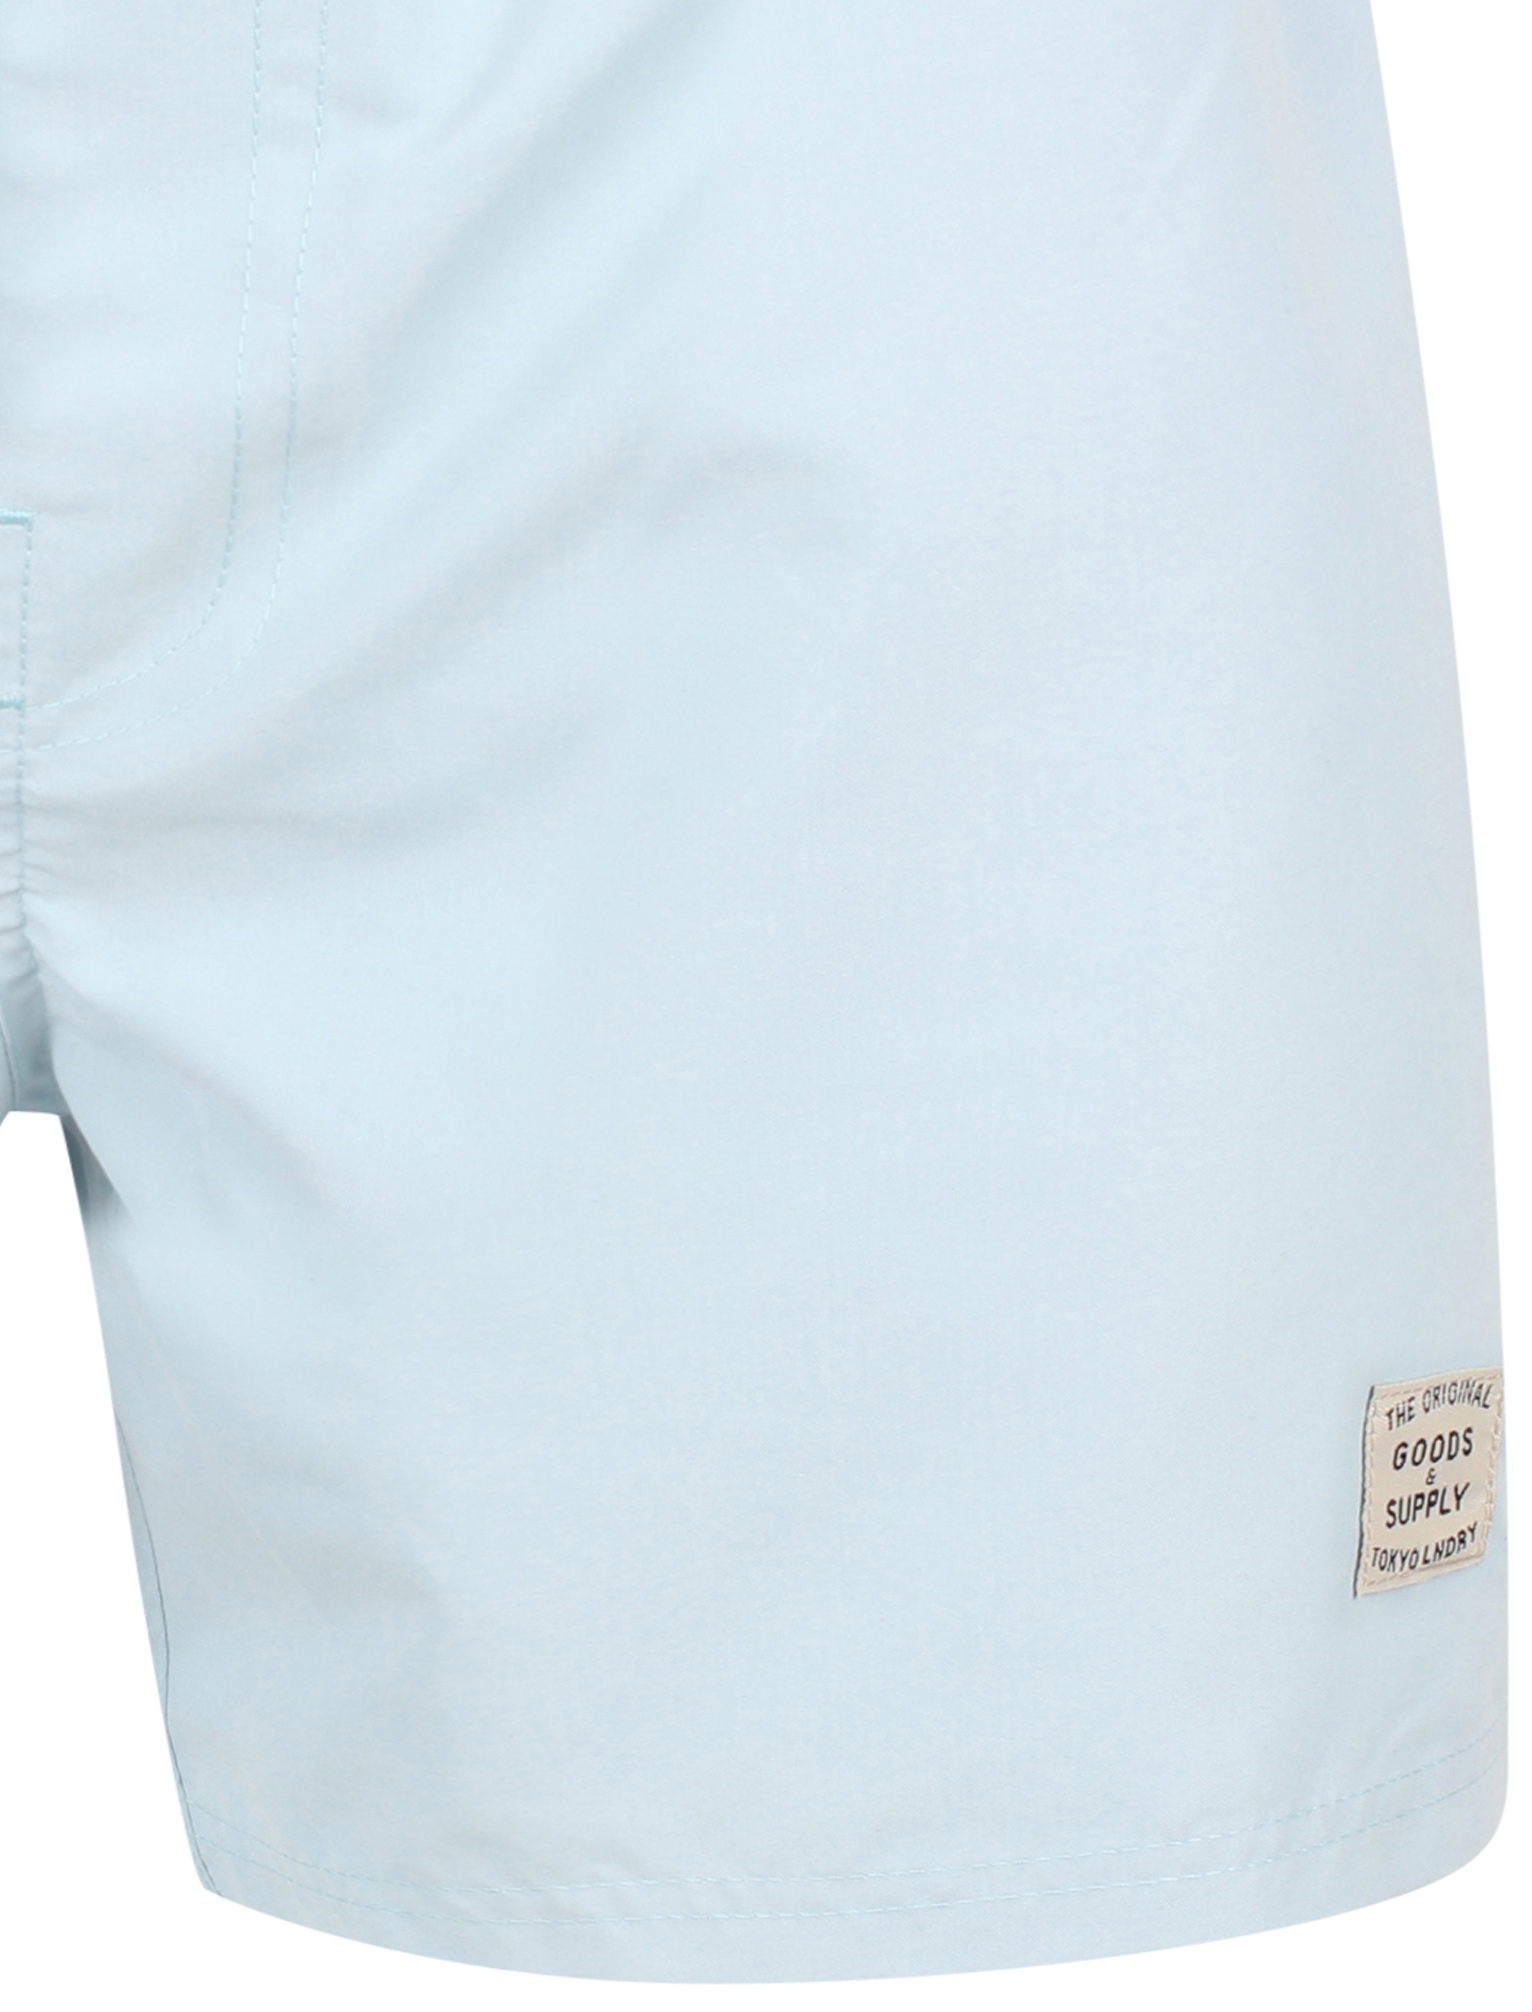 New-Mens-Tokyo-Laundry-Branded-Classic-Soft-Swim-Shorts-With-Pockets-Size-S-XXL thumbnail 8